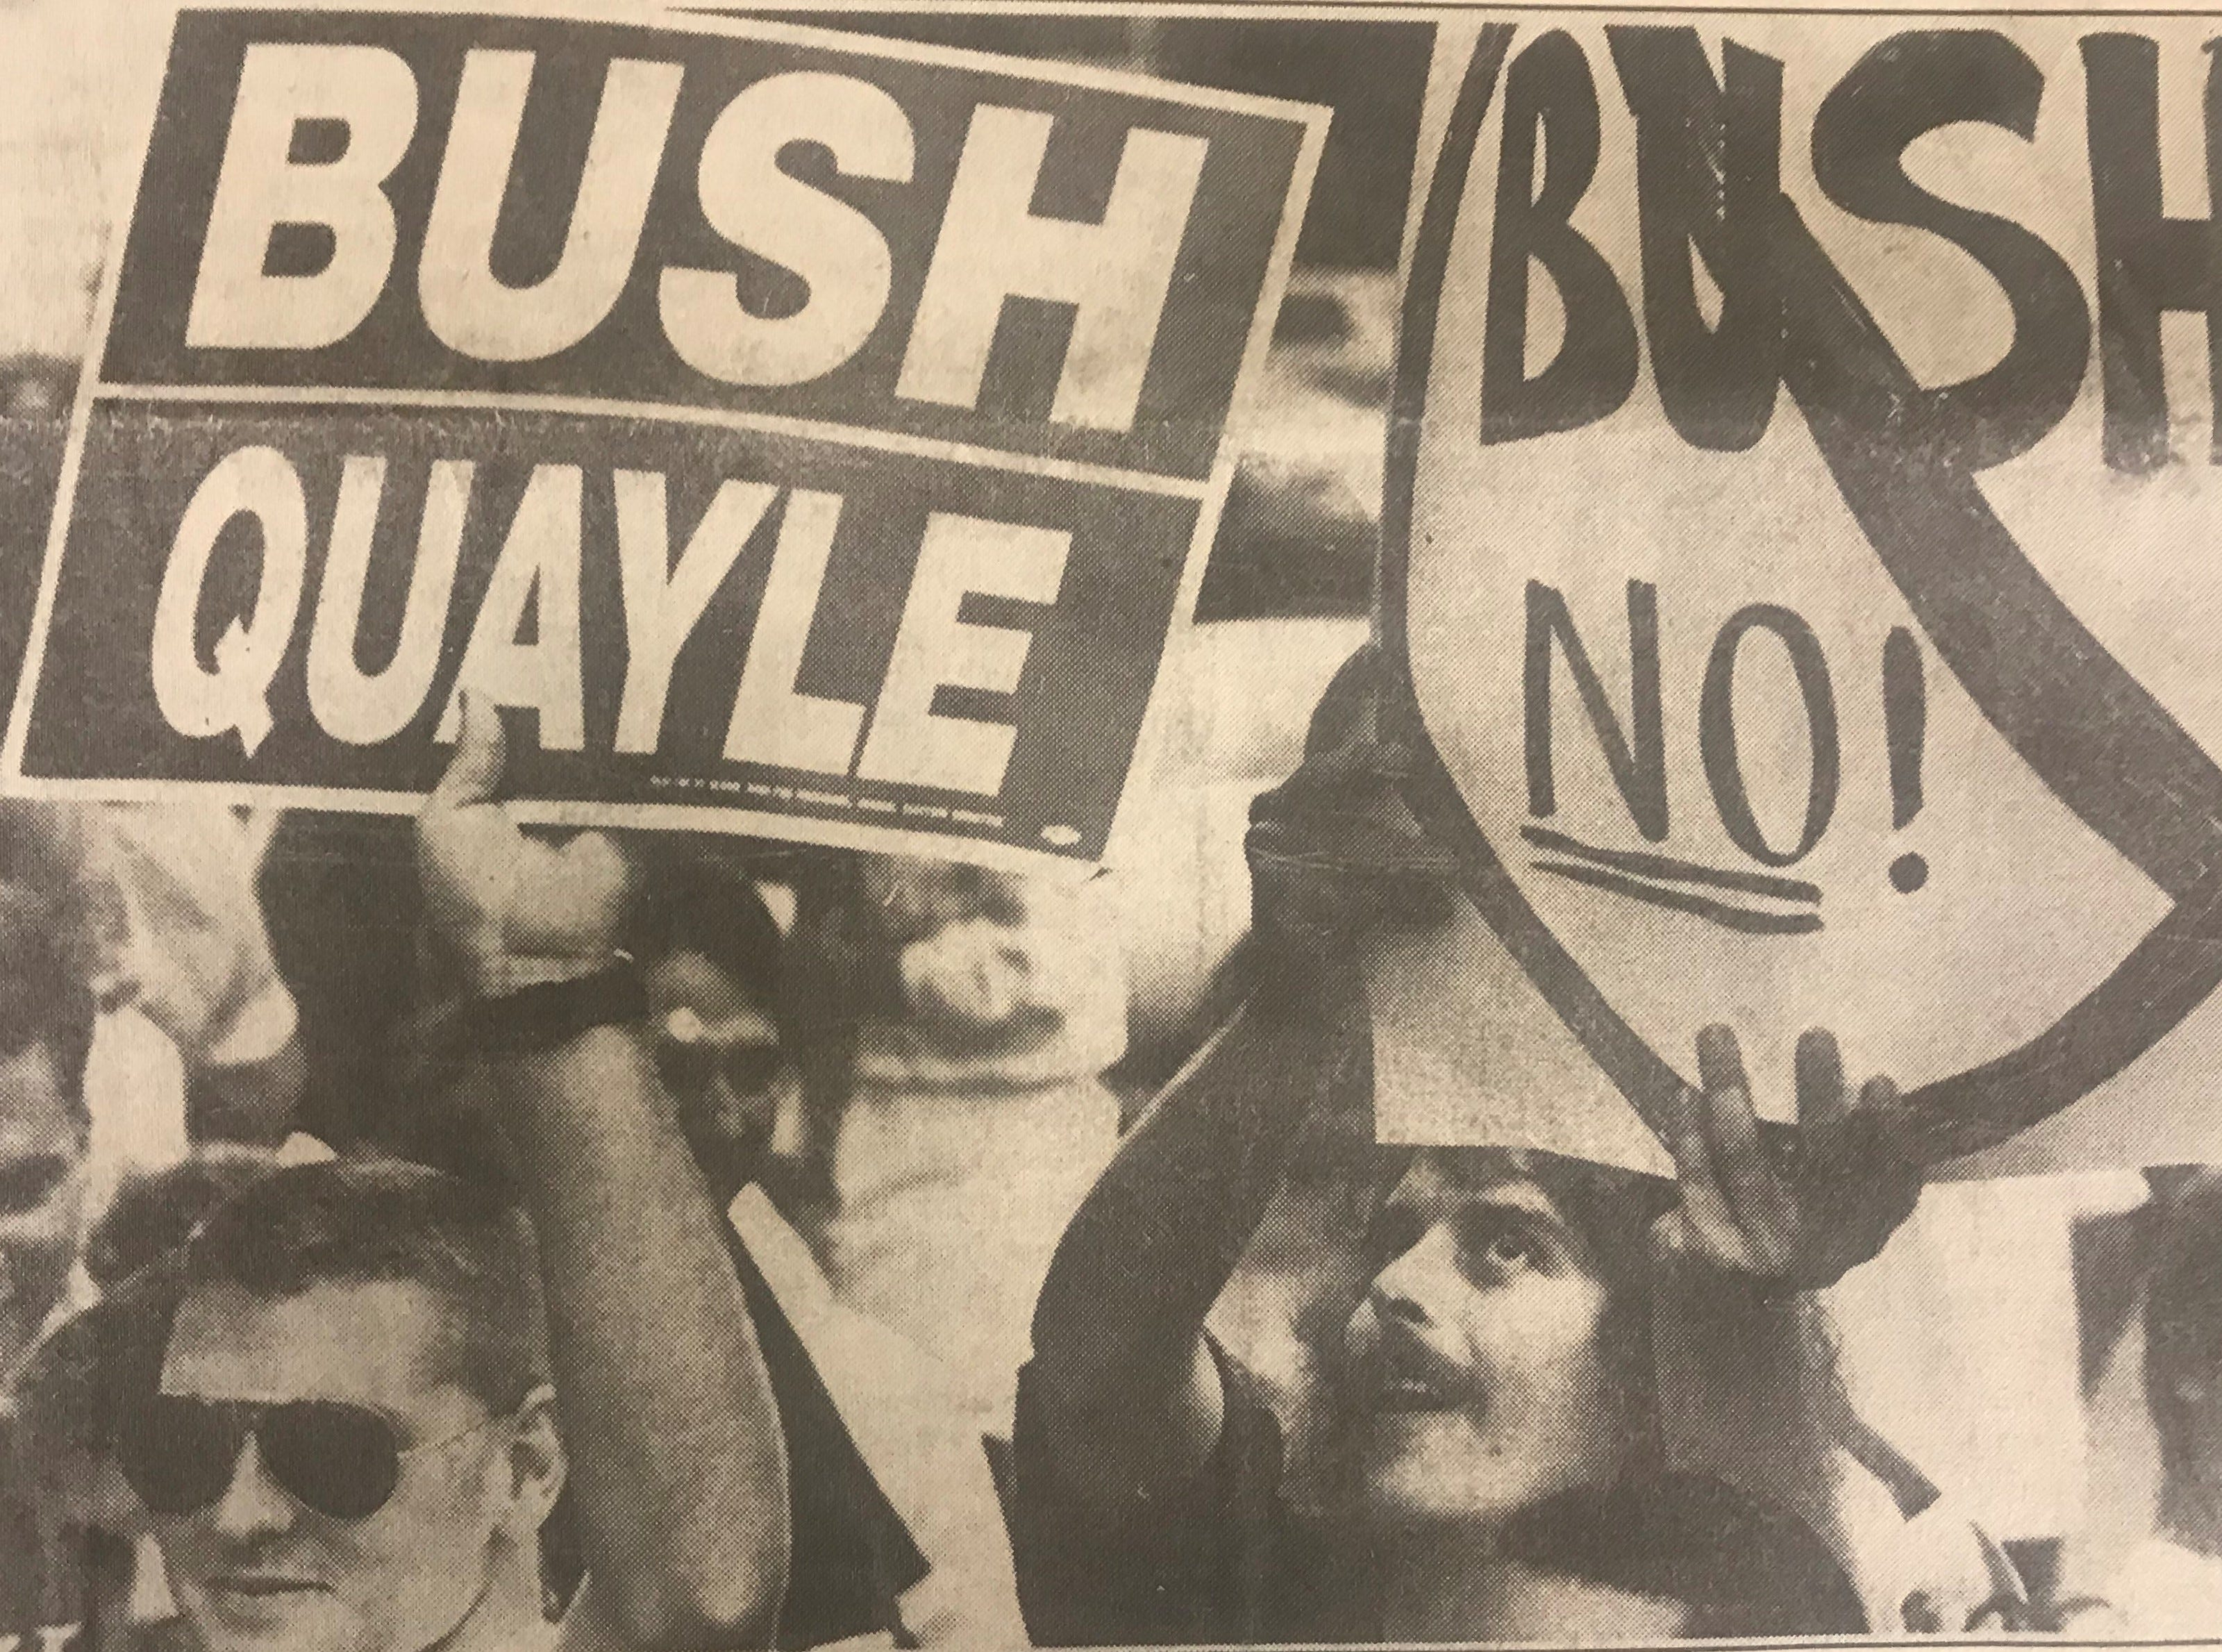 In this Aug. 29, 1988 photo, a protester and supporter stand beside each other at Vice President George H.W. Bush's presidential campaign held at MTSU in Murfreesboro, Tenn.